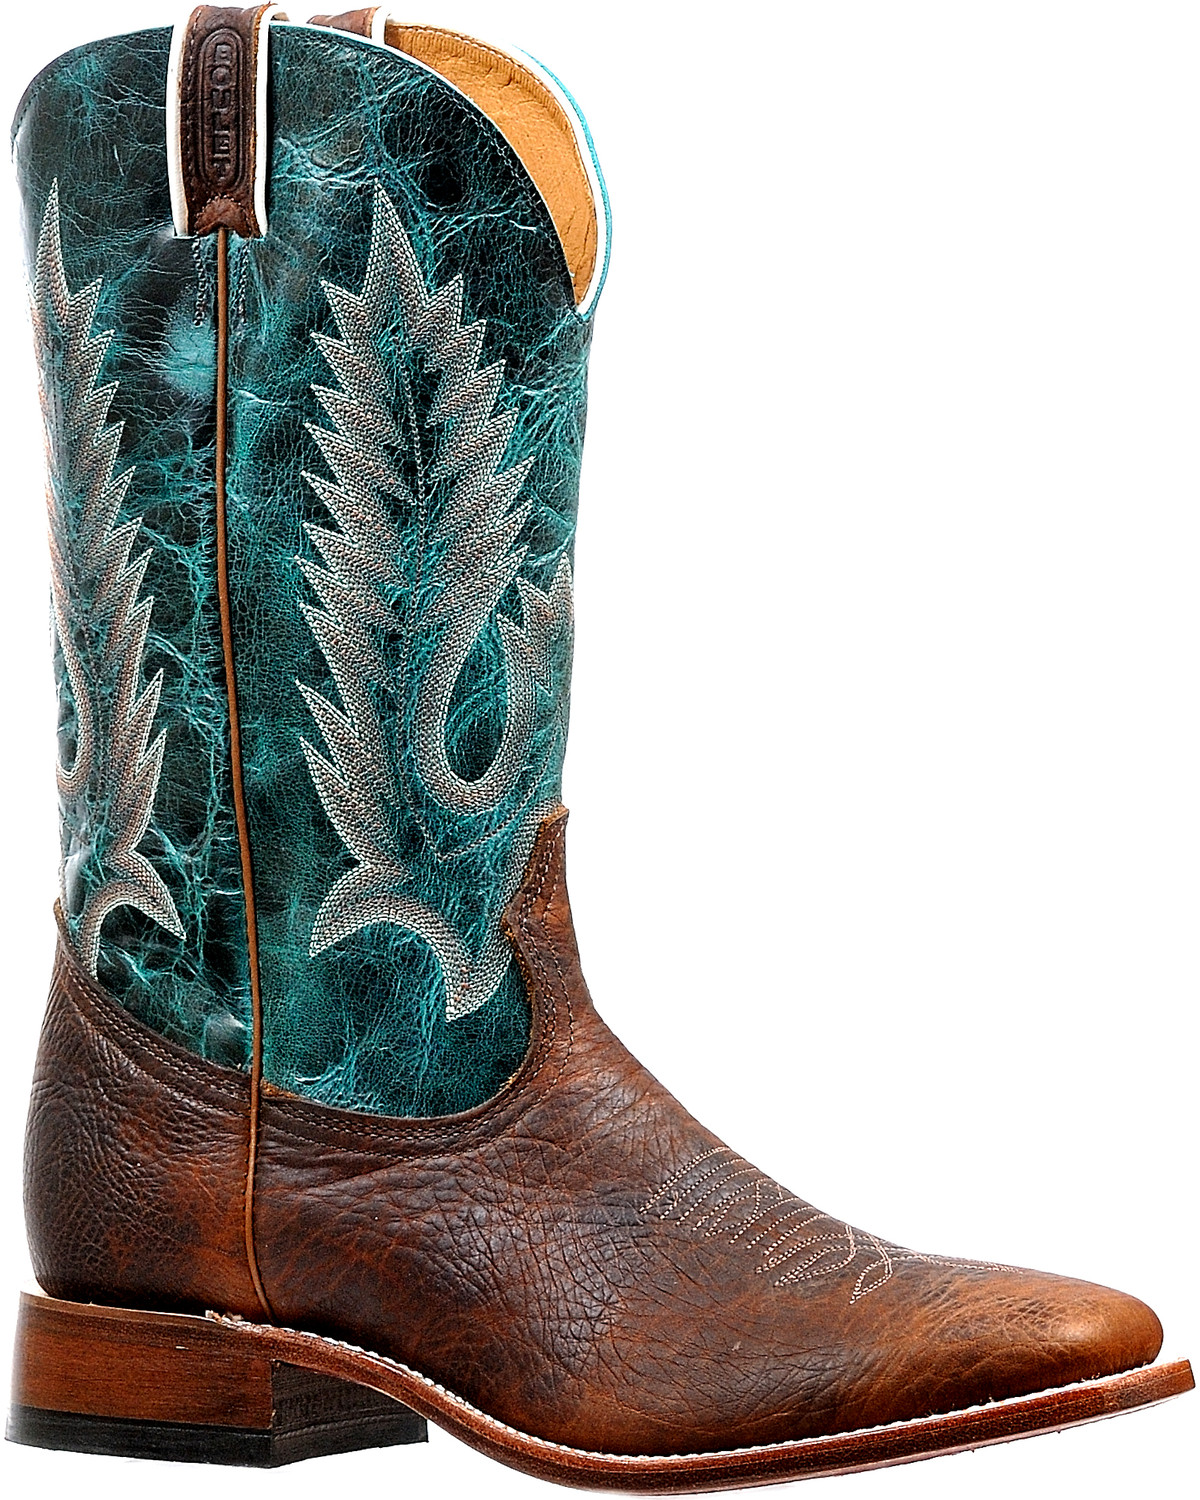 2062174c0cb Boulet Men's Brown/Turquoise Stockman Cowboy Boots - Square Toe